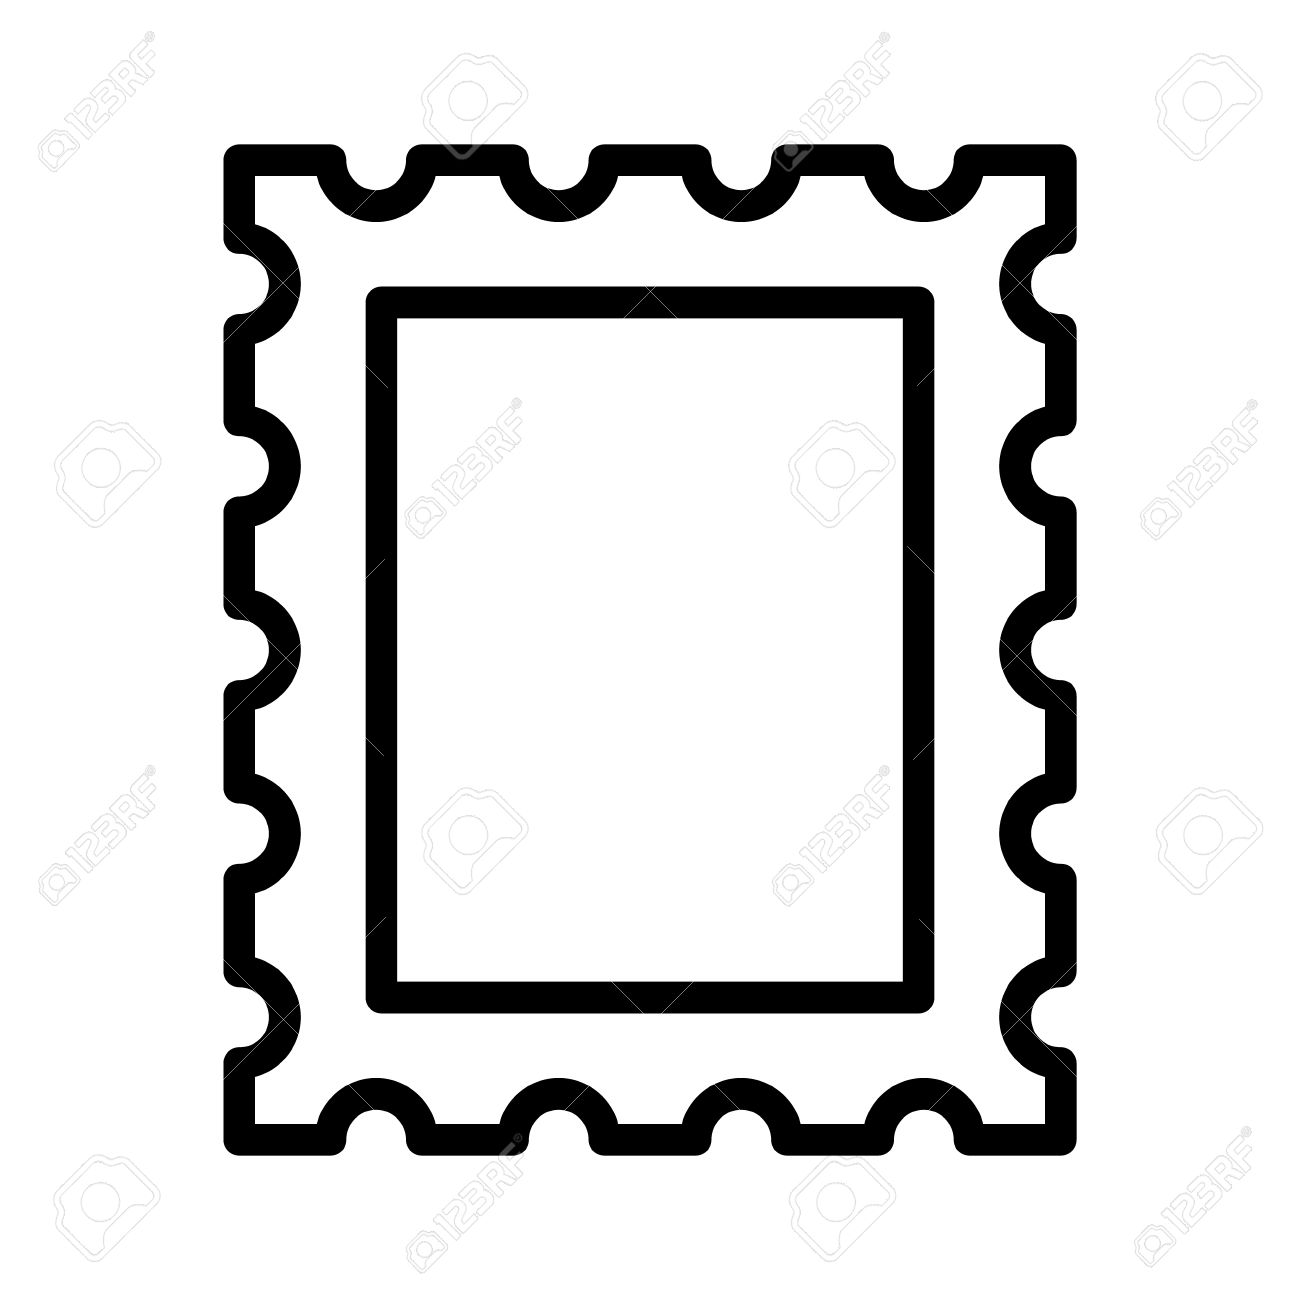 Letter Stamp Clipart.